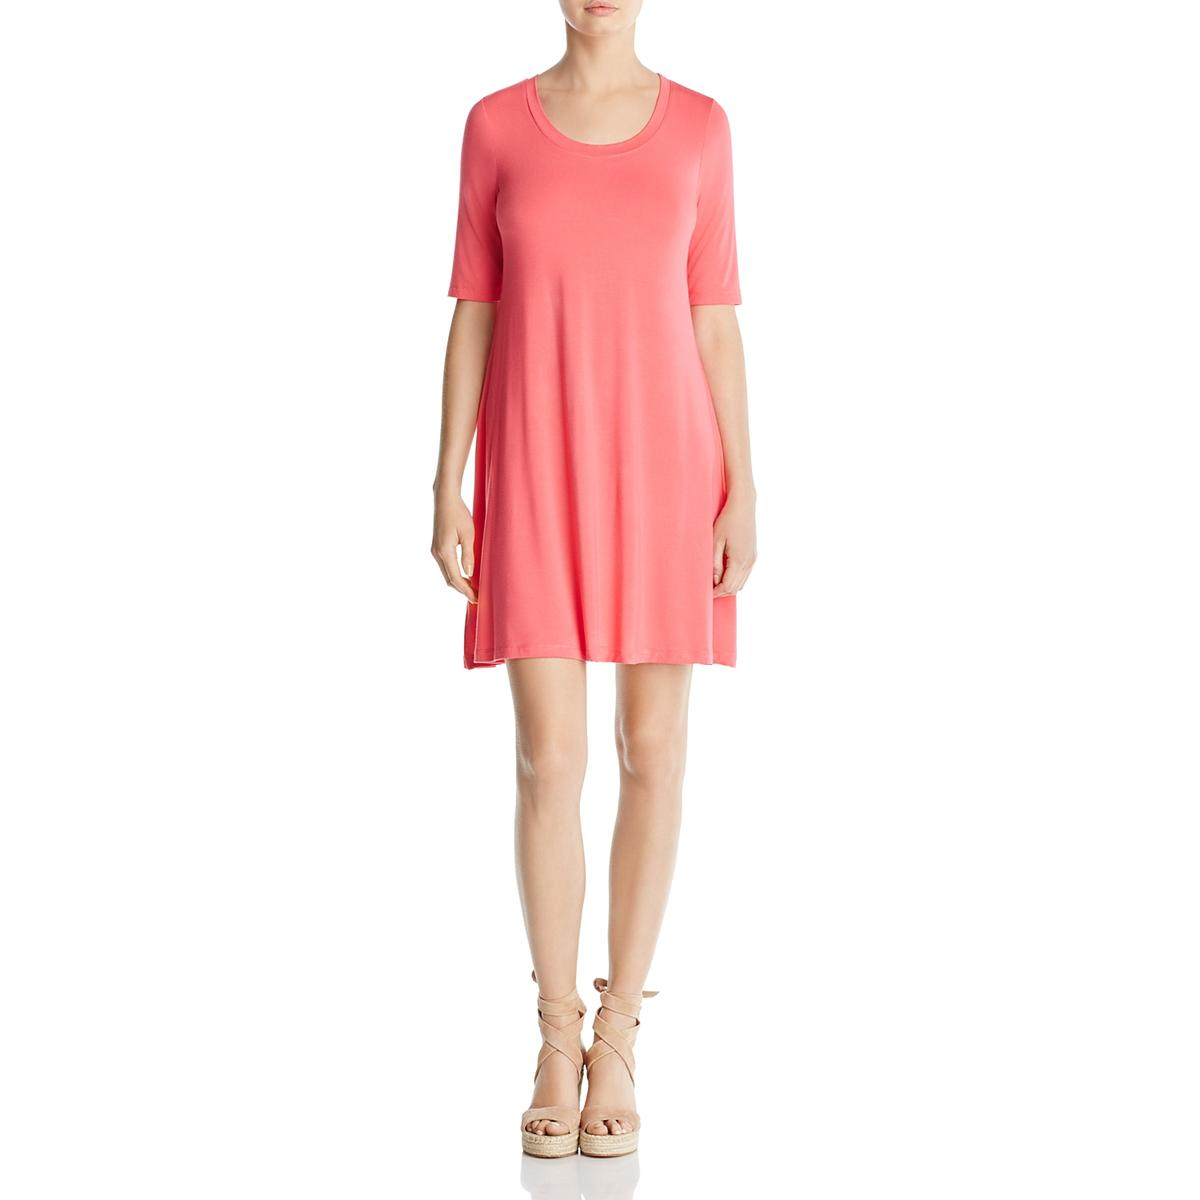 e931f92bdbe87e Details about Cupio Womens Elbow Sleeves Scoop Neck Above Knee T-Shirt  Dress BHFO 2996